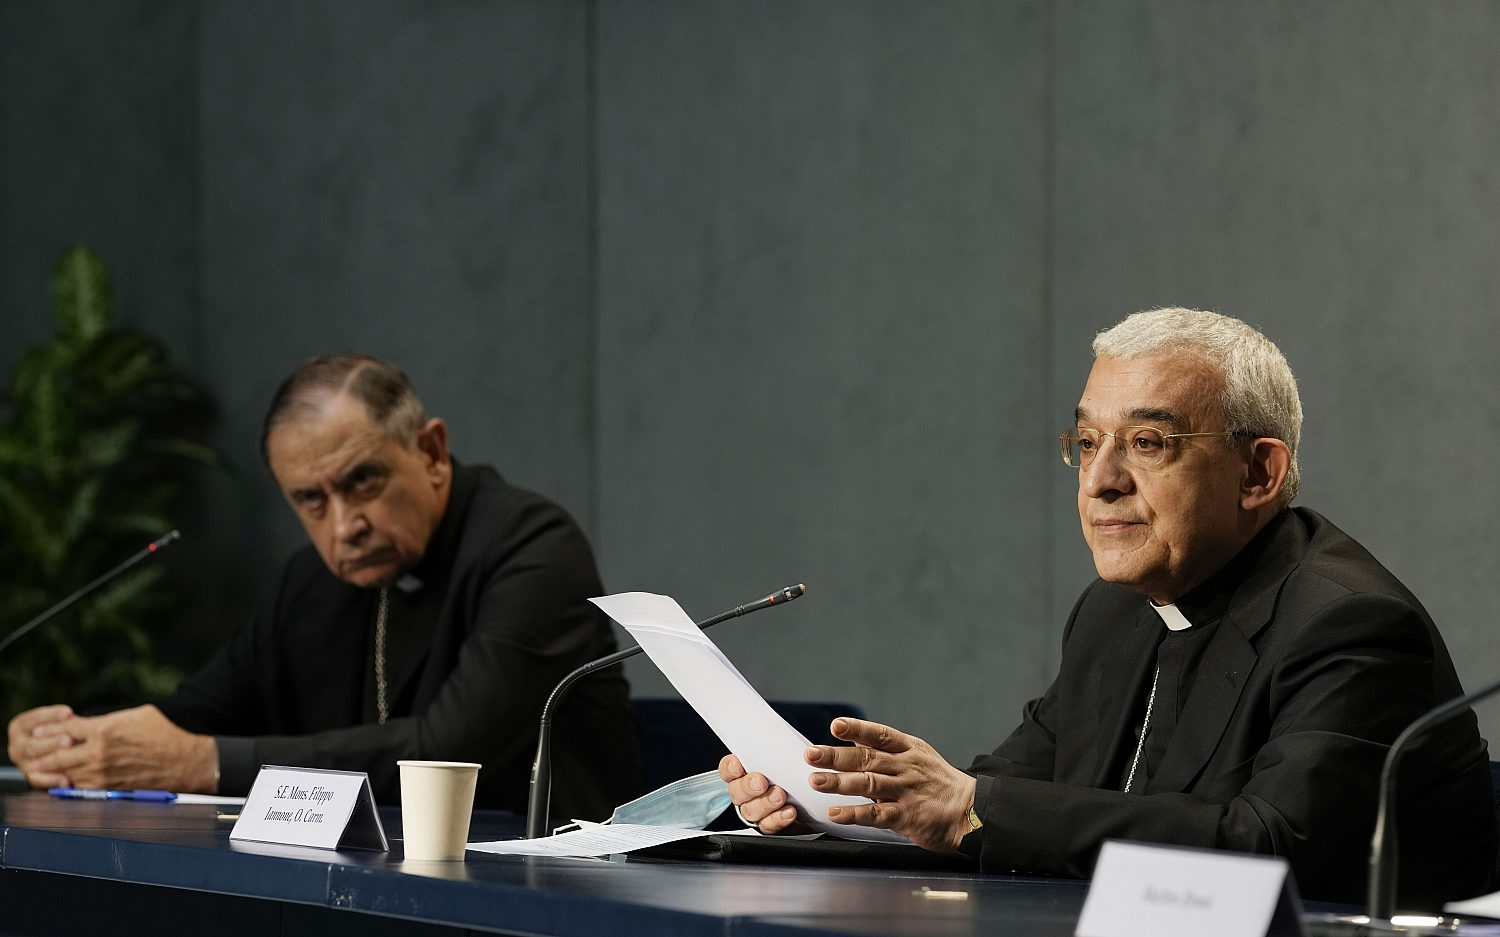 Vatican tightens but doesn't close accountability loopholes